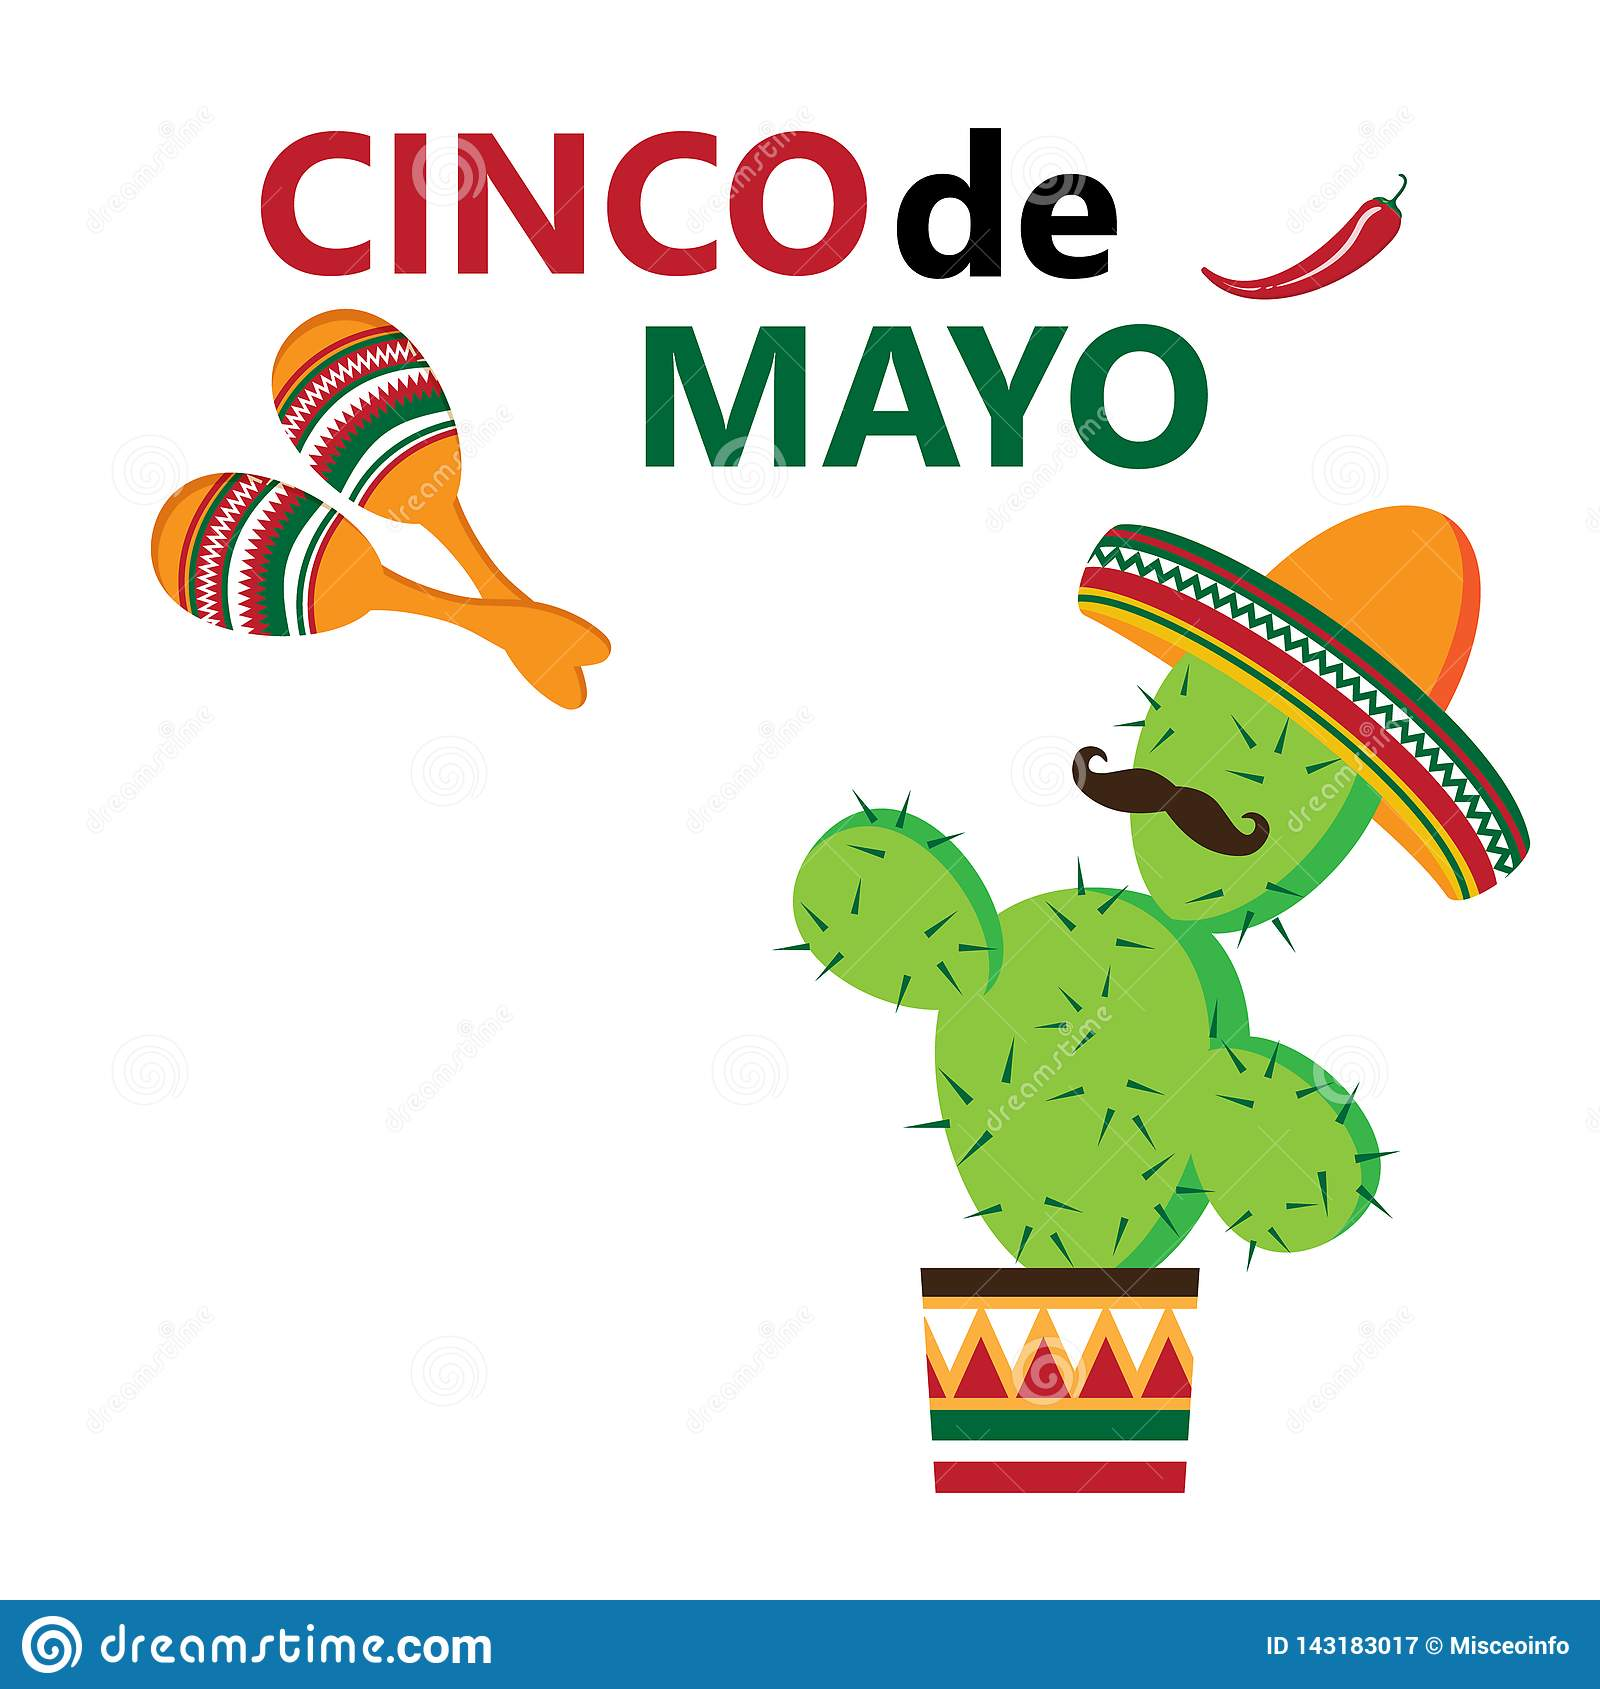 Cinco de Mayo, vector illustration